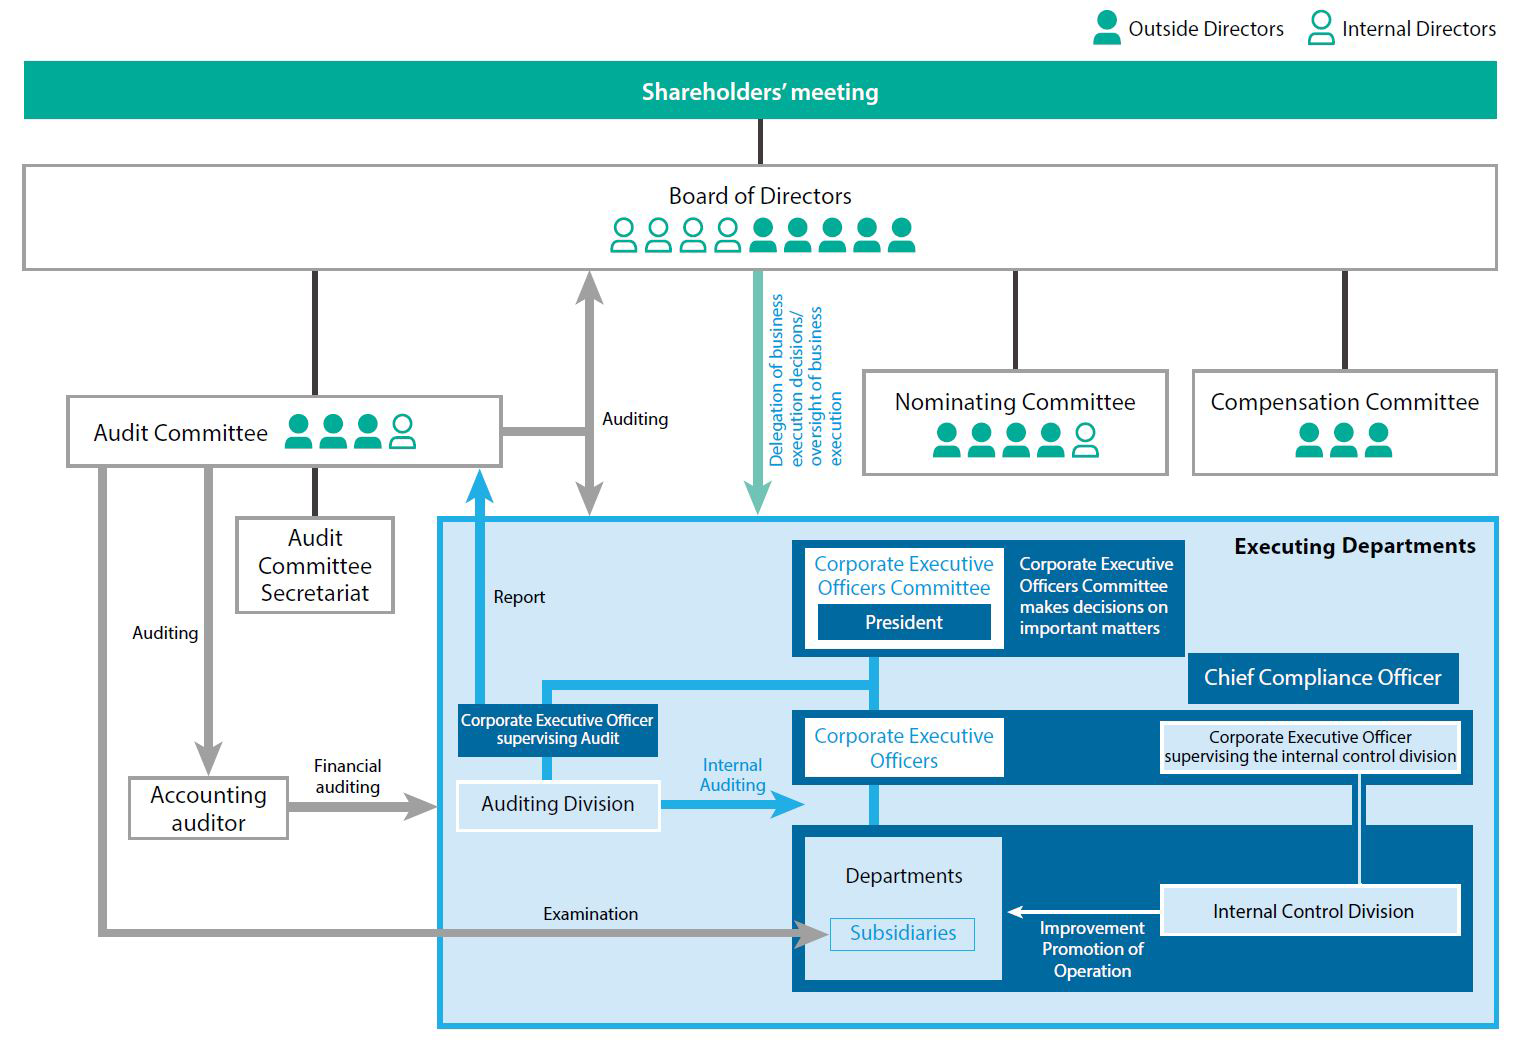 "System diagram: ""Board of Directors (5 Outside Directors: 7 Internal Directors) is placed directly under ""Shareholders' meeting.""                 ""Nominating Committee (4 Outside Directors 4: 1 Internal Director),"" ""Audit Committee (3 Outside Directors: 2 Internal Directors),"" and ""Compensation Committee (3 Outside Directors: 2 Internal Directors)"" are placed directly under ""Board of Directors.""                  ""Audit Committee Secretariat"" is placed directly under ""Audit Committee.""                  ""MCHC's executing departments"" are as follows.                 ""Corporate executive officers"" including ""Executive officer in charge of the Internal Control Division"" and ""Internal Auditing Division (Internal Audit Office)"" are placed directly under ""Corporate Executive Officers Committee (President): Corporate Executive Officers Committee makes decisions on important matters.""                  ""Departments"" including ""Internal Control Division (Internal Control Office)"" are placed directly under ""Corporate executive officers""; ""Internal Control Division (Internal Control Office)"" reports to ""Executive officer in charge of the Internal Control Division.""  ""Chief Group Compliance Officer"" is appointed as an independent position.  ""Internal Auditing Division (Internal Audit Office)"" conducts internal audits with respect to ""Corporate executive officers"" and ""Departments.""                  ""MCHC's executing departments"" execute management administration, internal controls, auditing, etc., with respect to ""MCHC subsidiaries.""                 ""Board of Directors"" delegates business execution decisions and oversees business execution with respect to ""MCHC's executing departments.""                 ""Audit Committee"" performs auditing with respect to ""Board of Directors"" and ""MCHC's executing departments"" as well as ""Accounting auditor,"" and  conducts examination with respect to ""MCHC subsidiaries.""                  ""Accounting auditor"" conducts financial auditing with respect to ""MCHC's executing departments."""